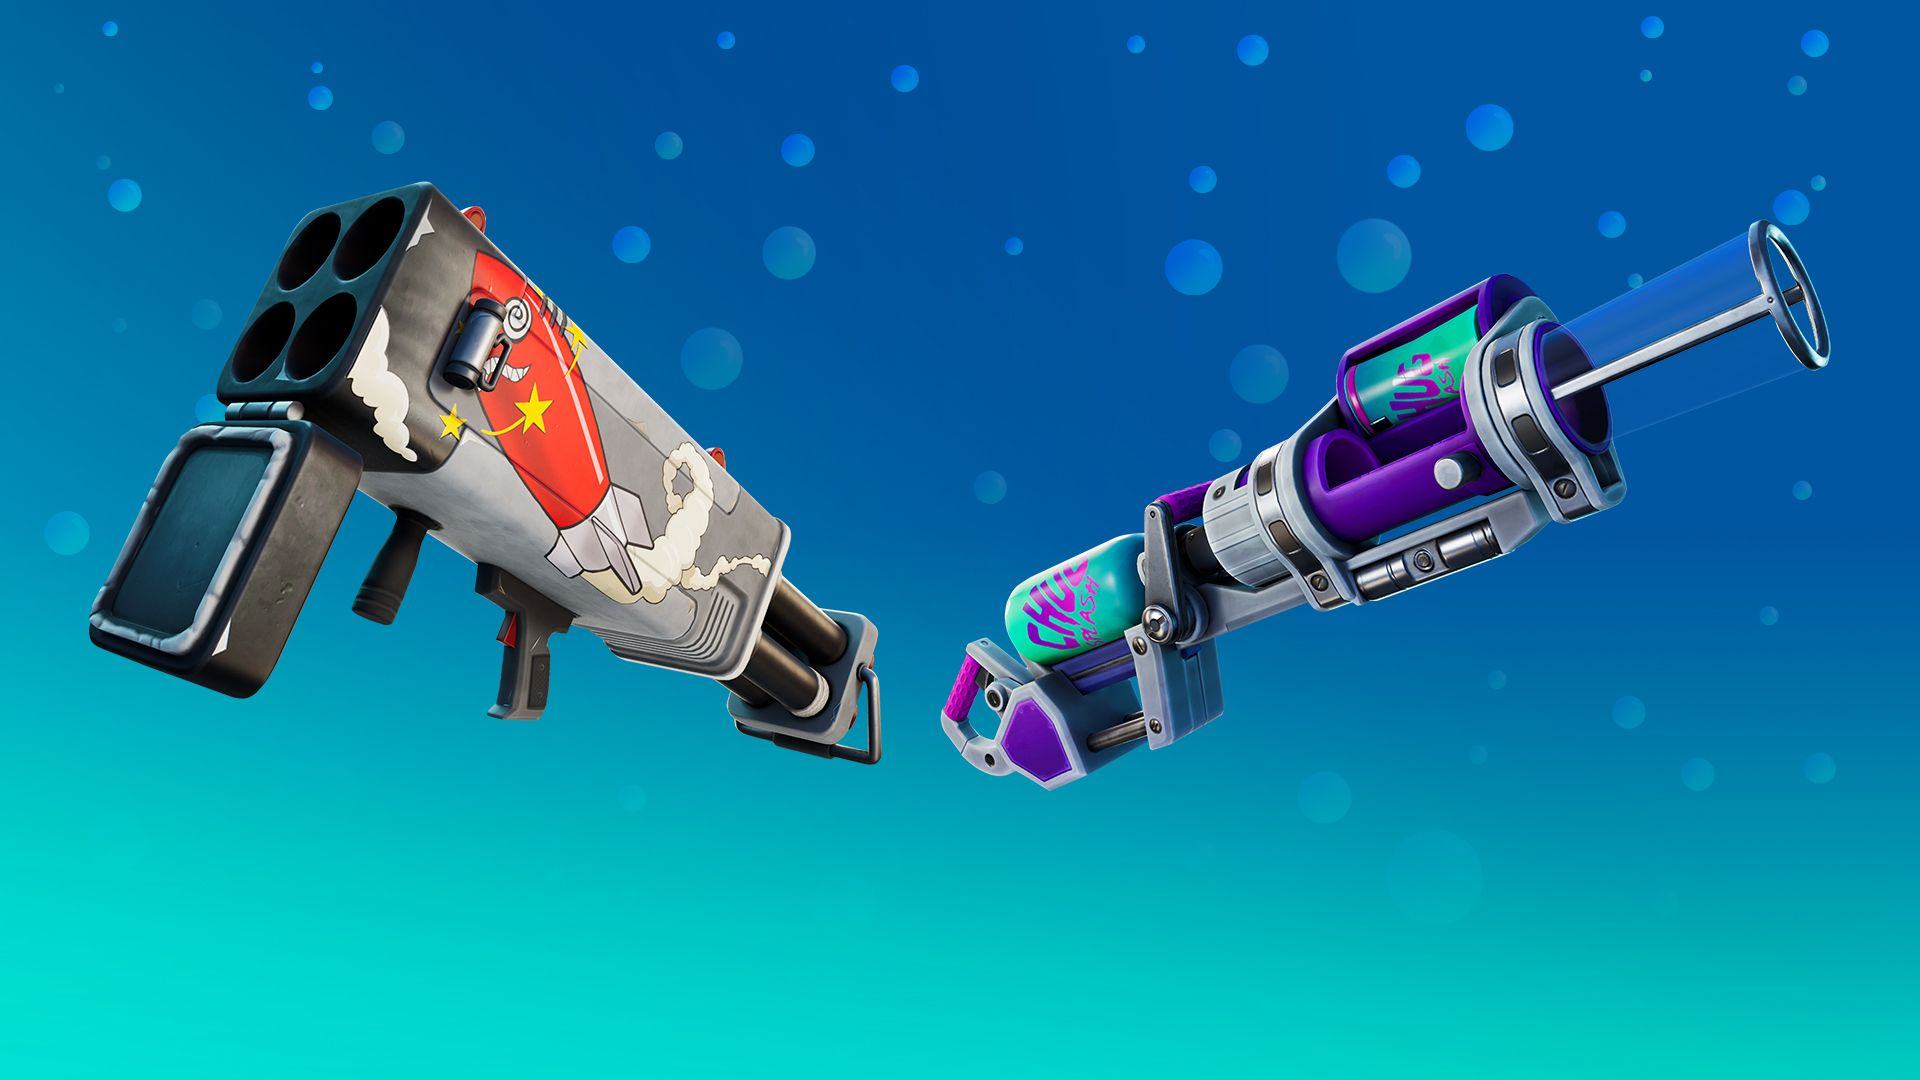 fortnite-patch-v15.30:-what-is-new?